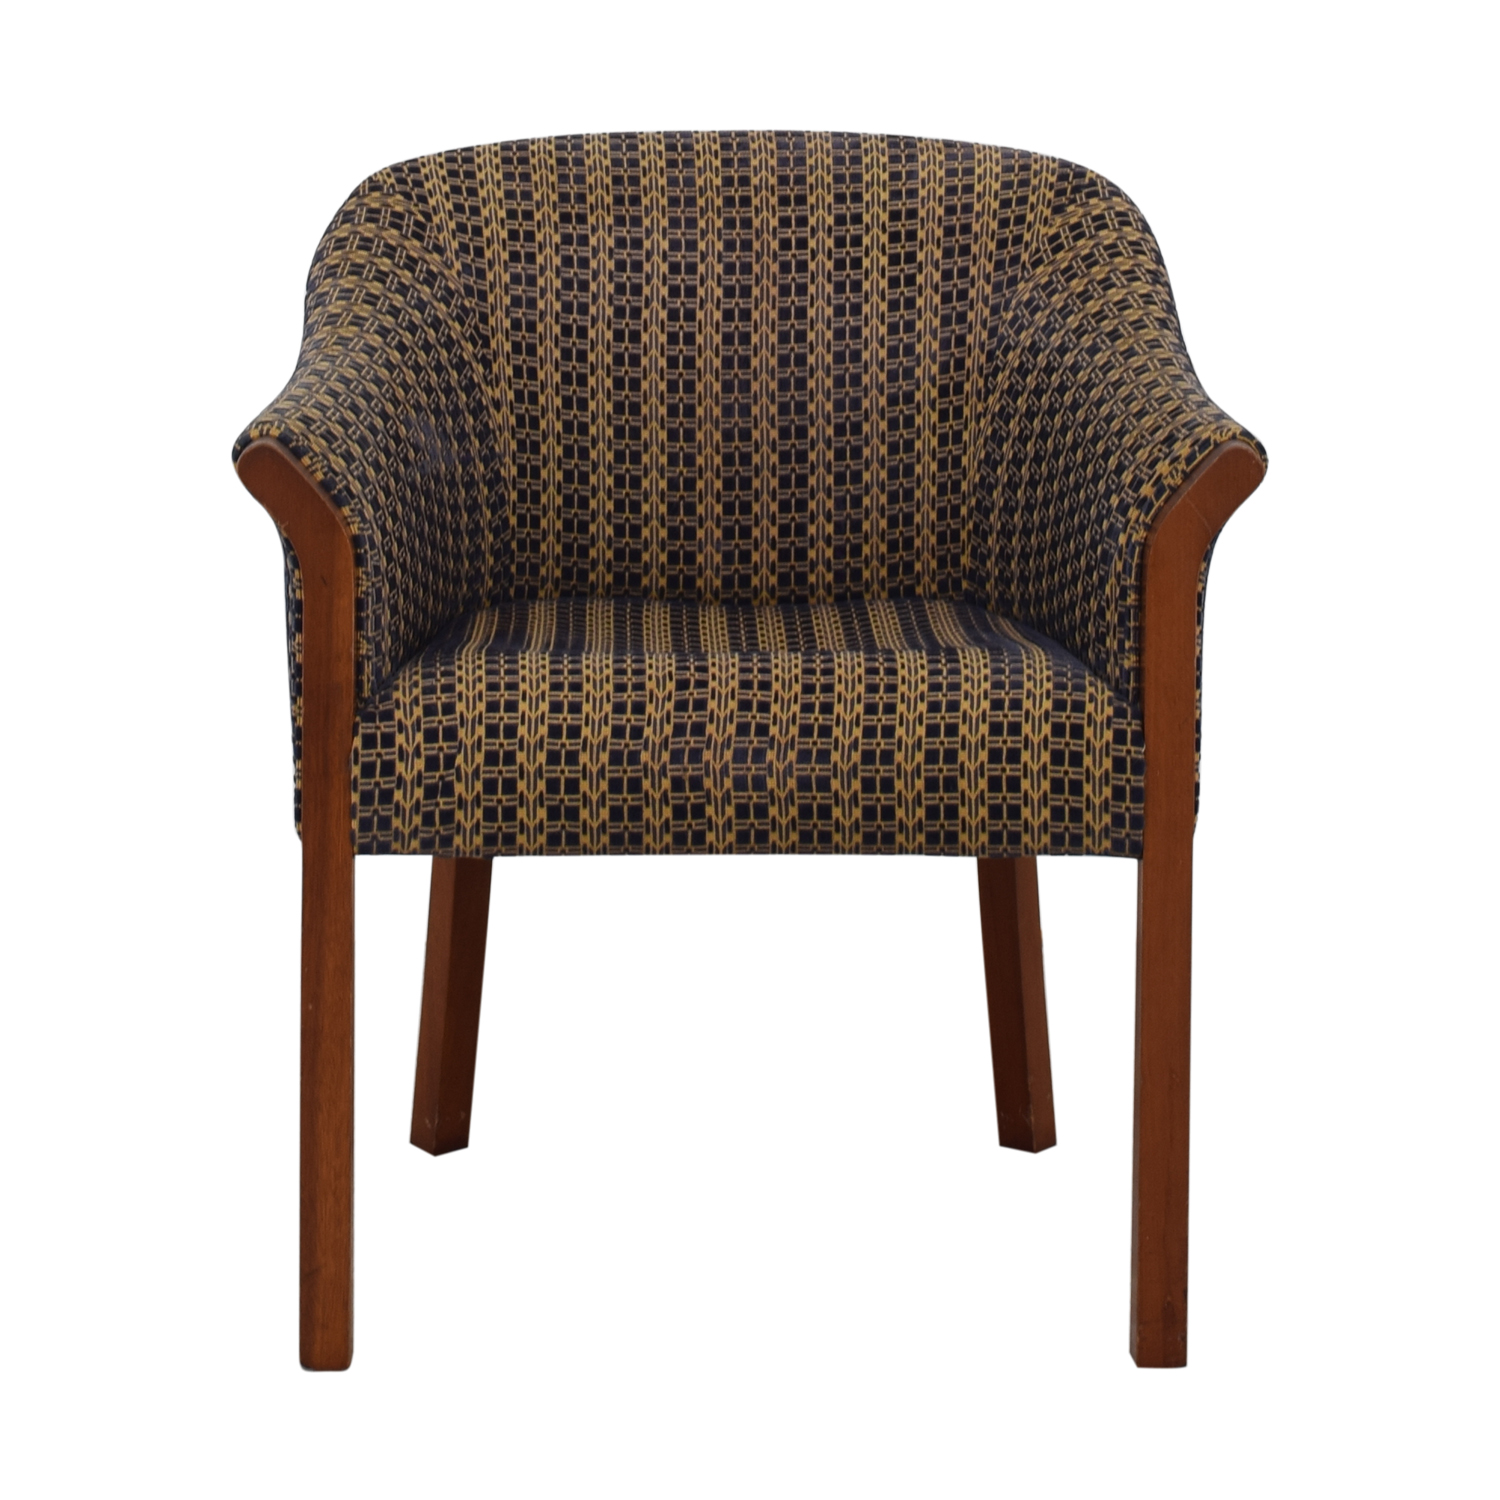 Blue and Gold Upholstered Accent Chair used